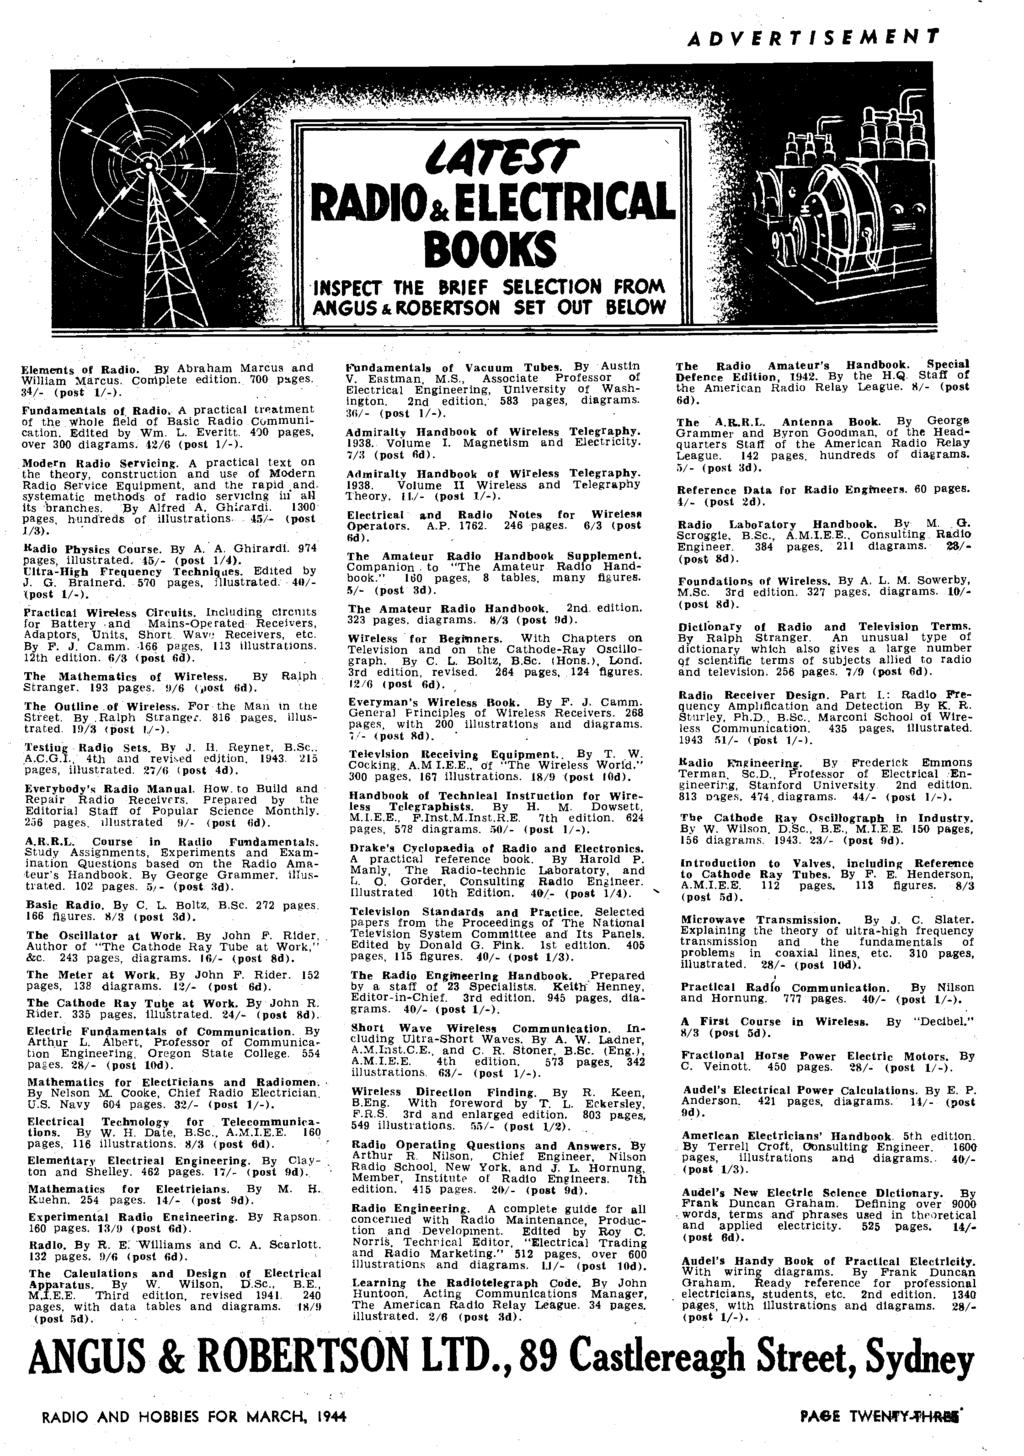 Radio Hobbies Sound On Film A New Series In Australia And Ecnico Robertson Ballast Wiring Diagram Advertisement Ca Io Electrical Boo Inspect The Brief Selection From Angus Set Out